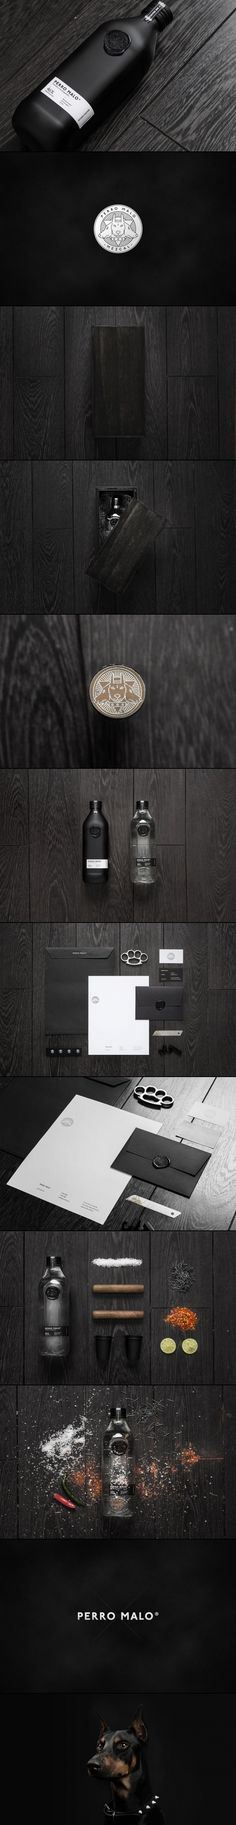 Perro Malo study in black #identity #packaging #branding PD